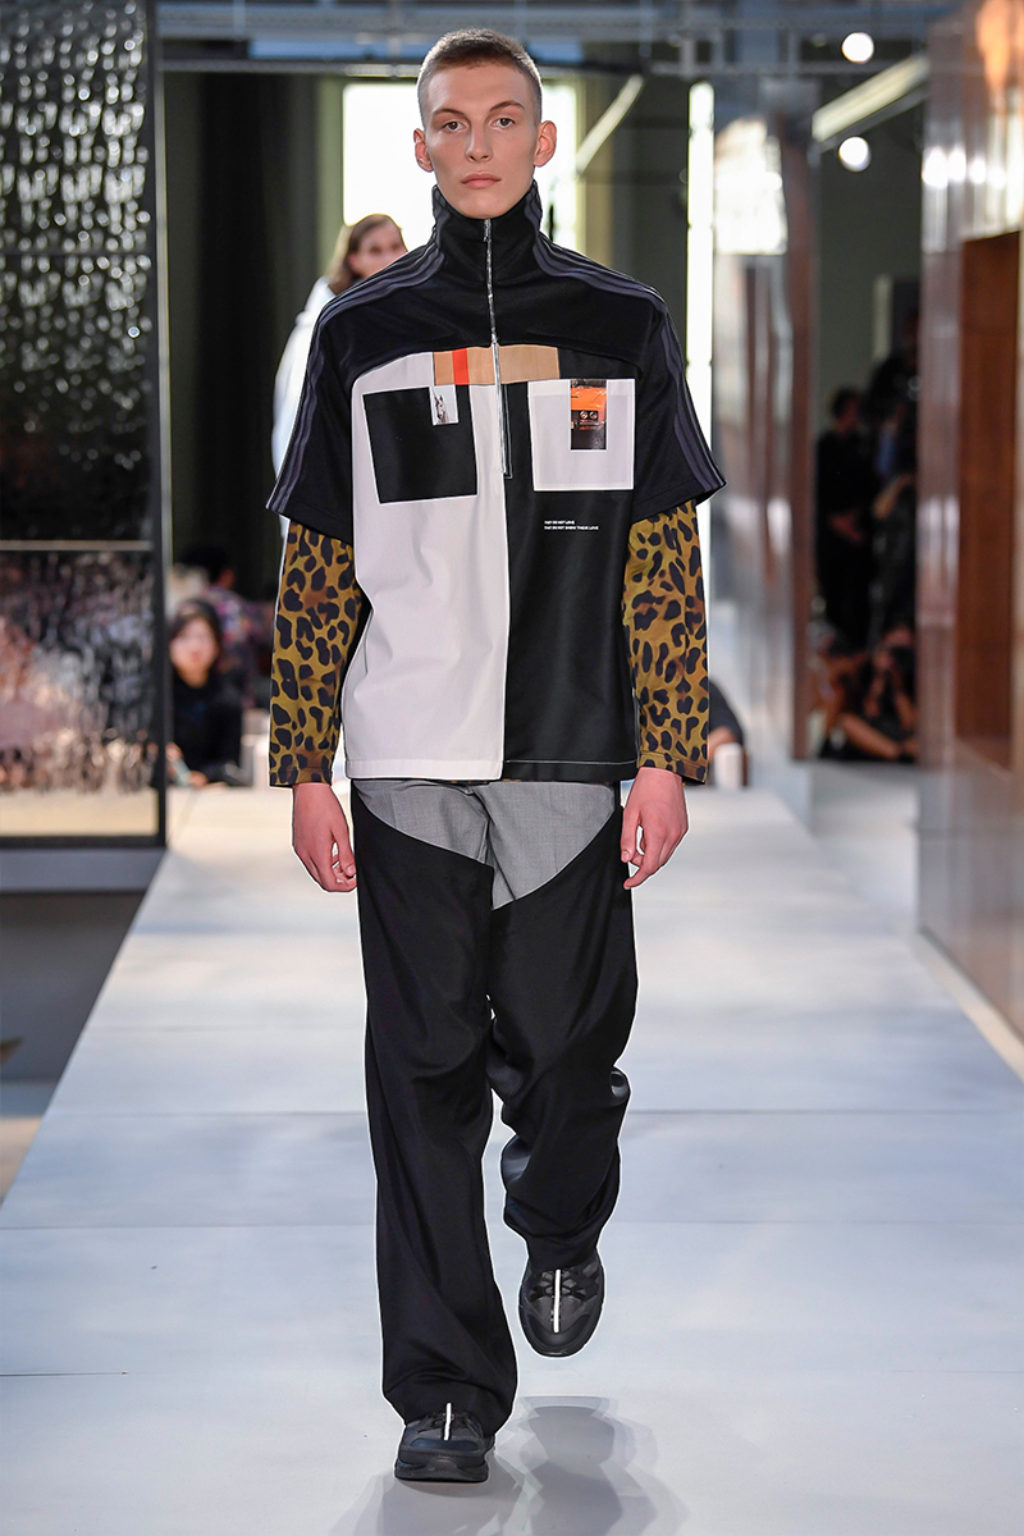 Male Runway Model Wearing short sleeve jacket half white and half black with black and white pockets, orange accents, brown and black leopard print sleeves, black and gray geometric pants-Burberry Men's Collection 2019